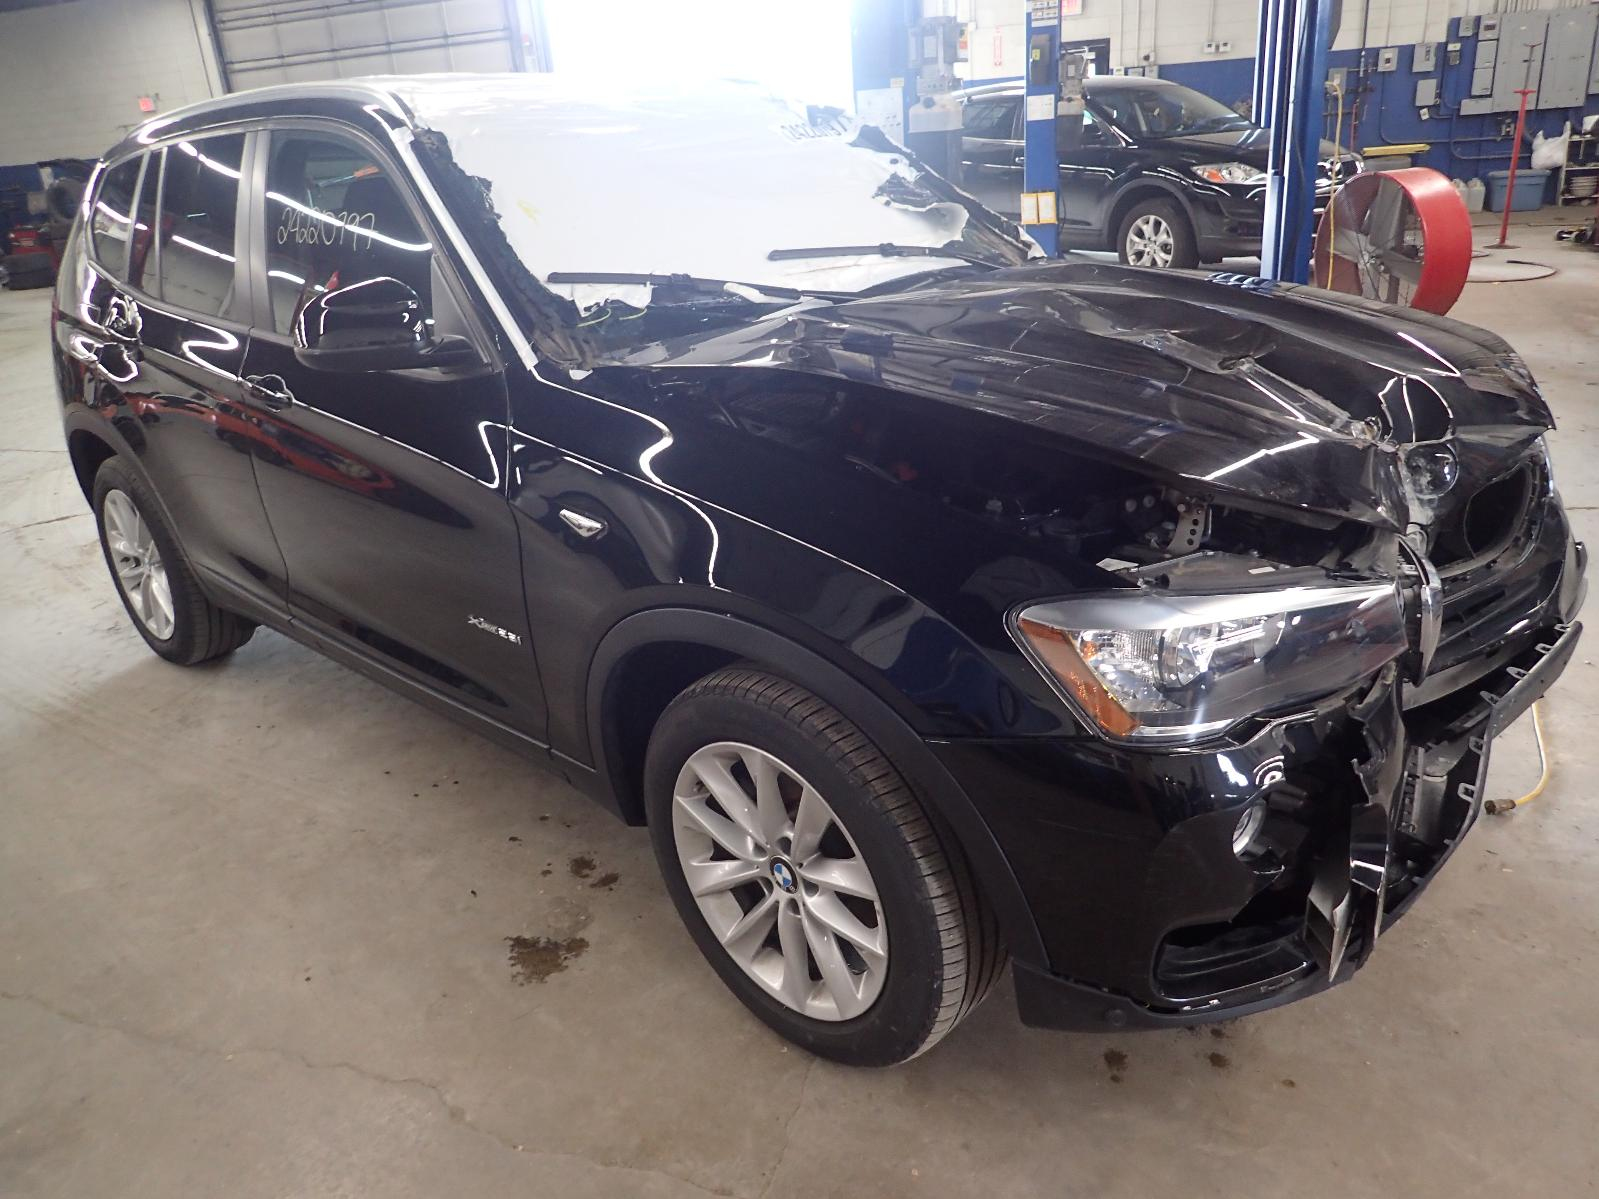 Used Owner U0026 39 S Manual For Sale For A 2015 Bmw X3